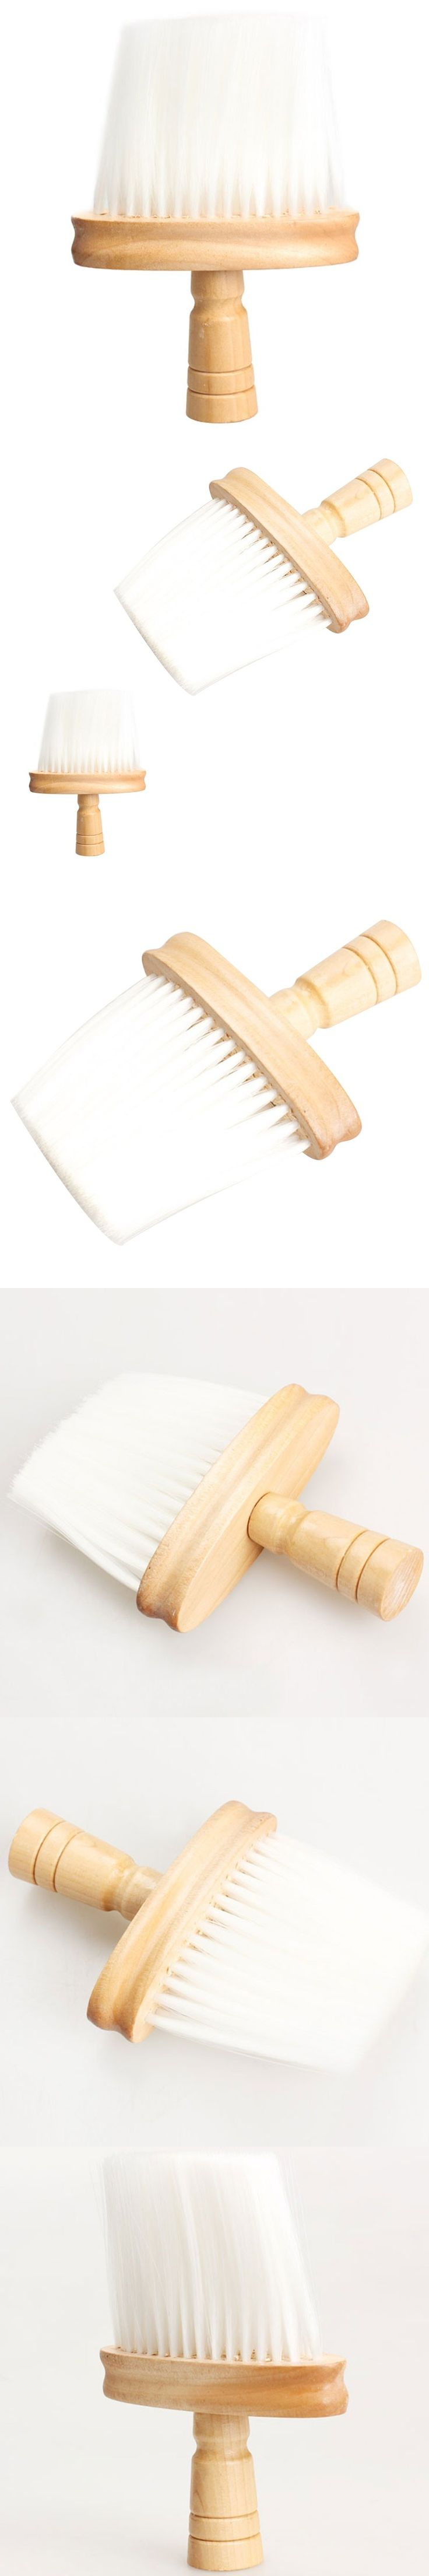 Professional Soft Neck Face Hair Brush Barber Hair Clean Brush Salon Cutting Hairdressing Accessory Styling Tools